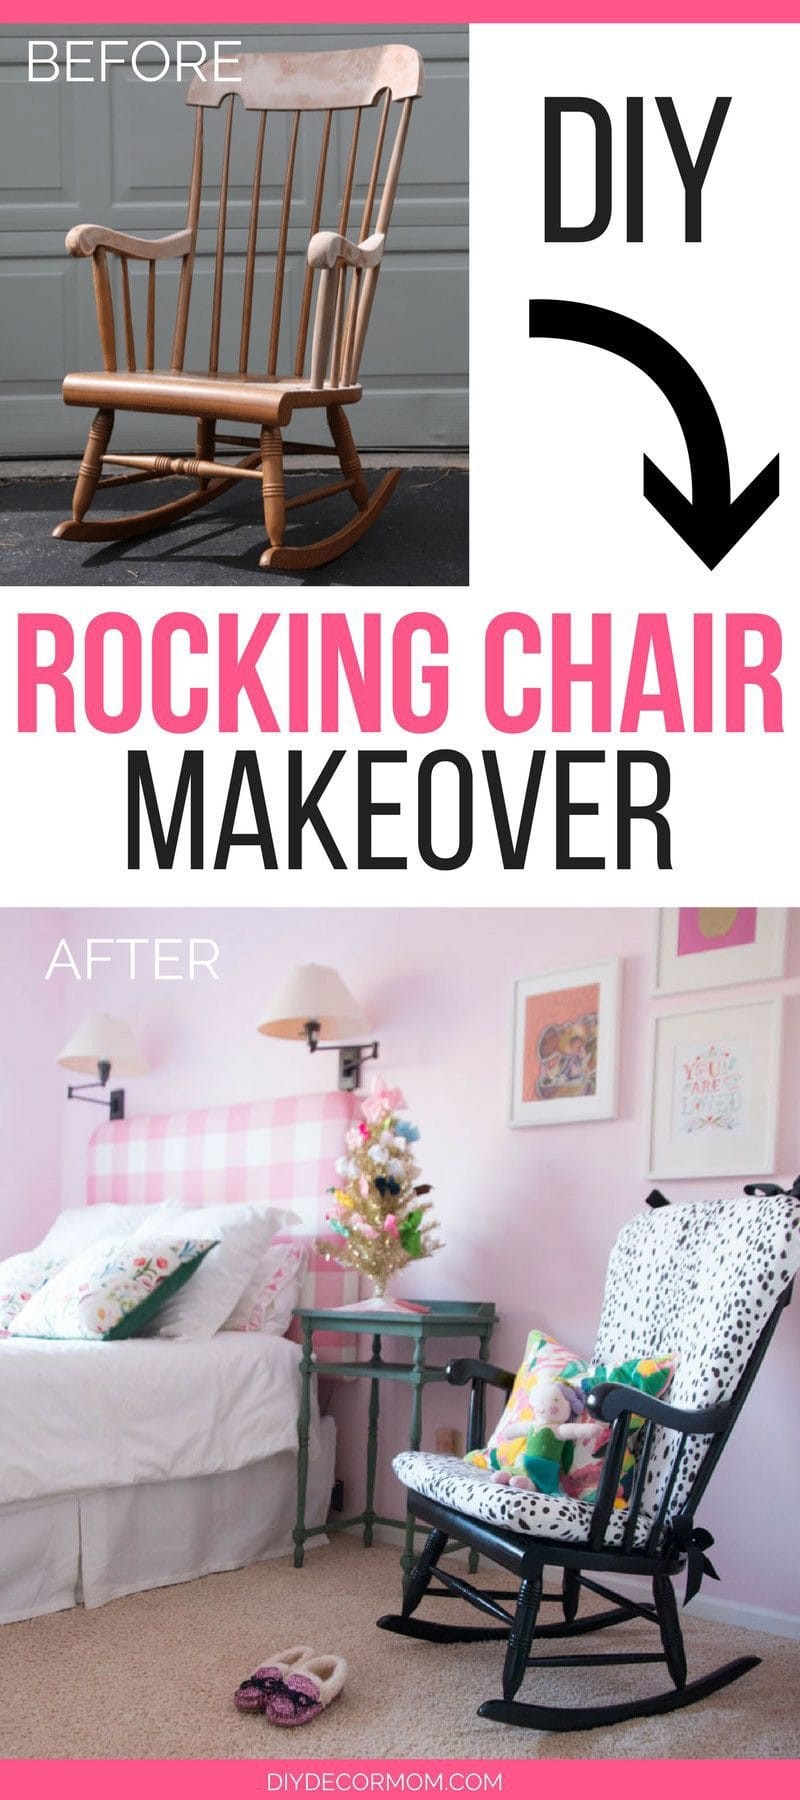 upholstered rocking chair before and after